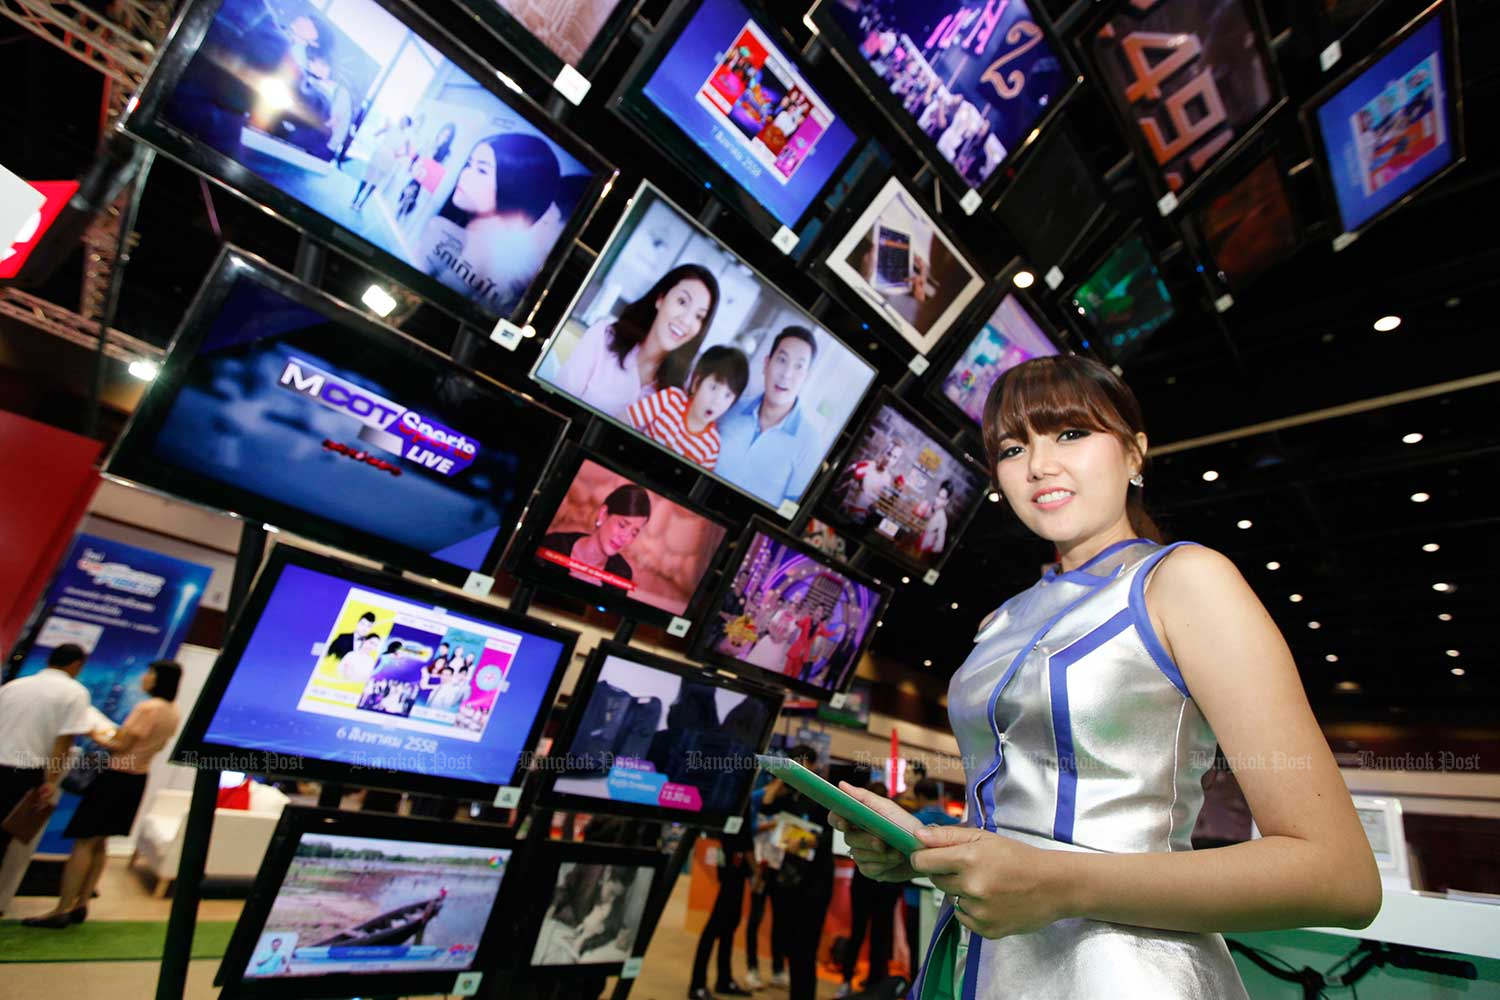 The number of digital TV channels will decline from 22 to 15 on Oct 1.